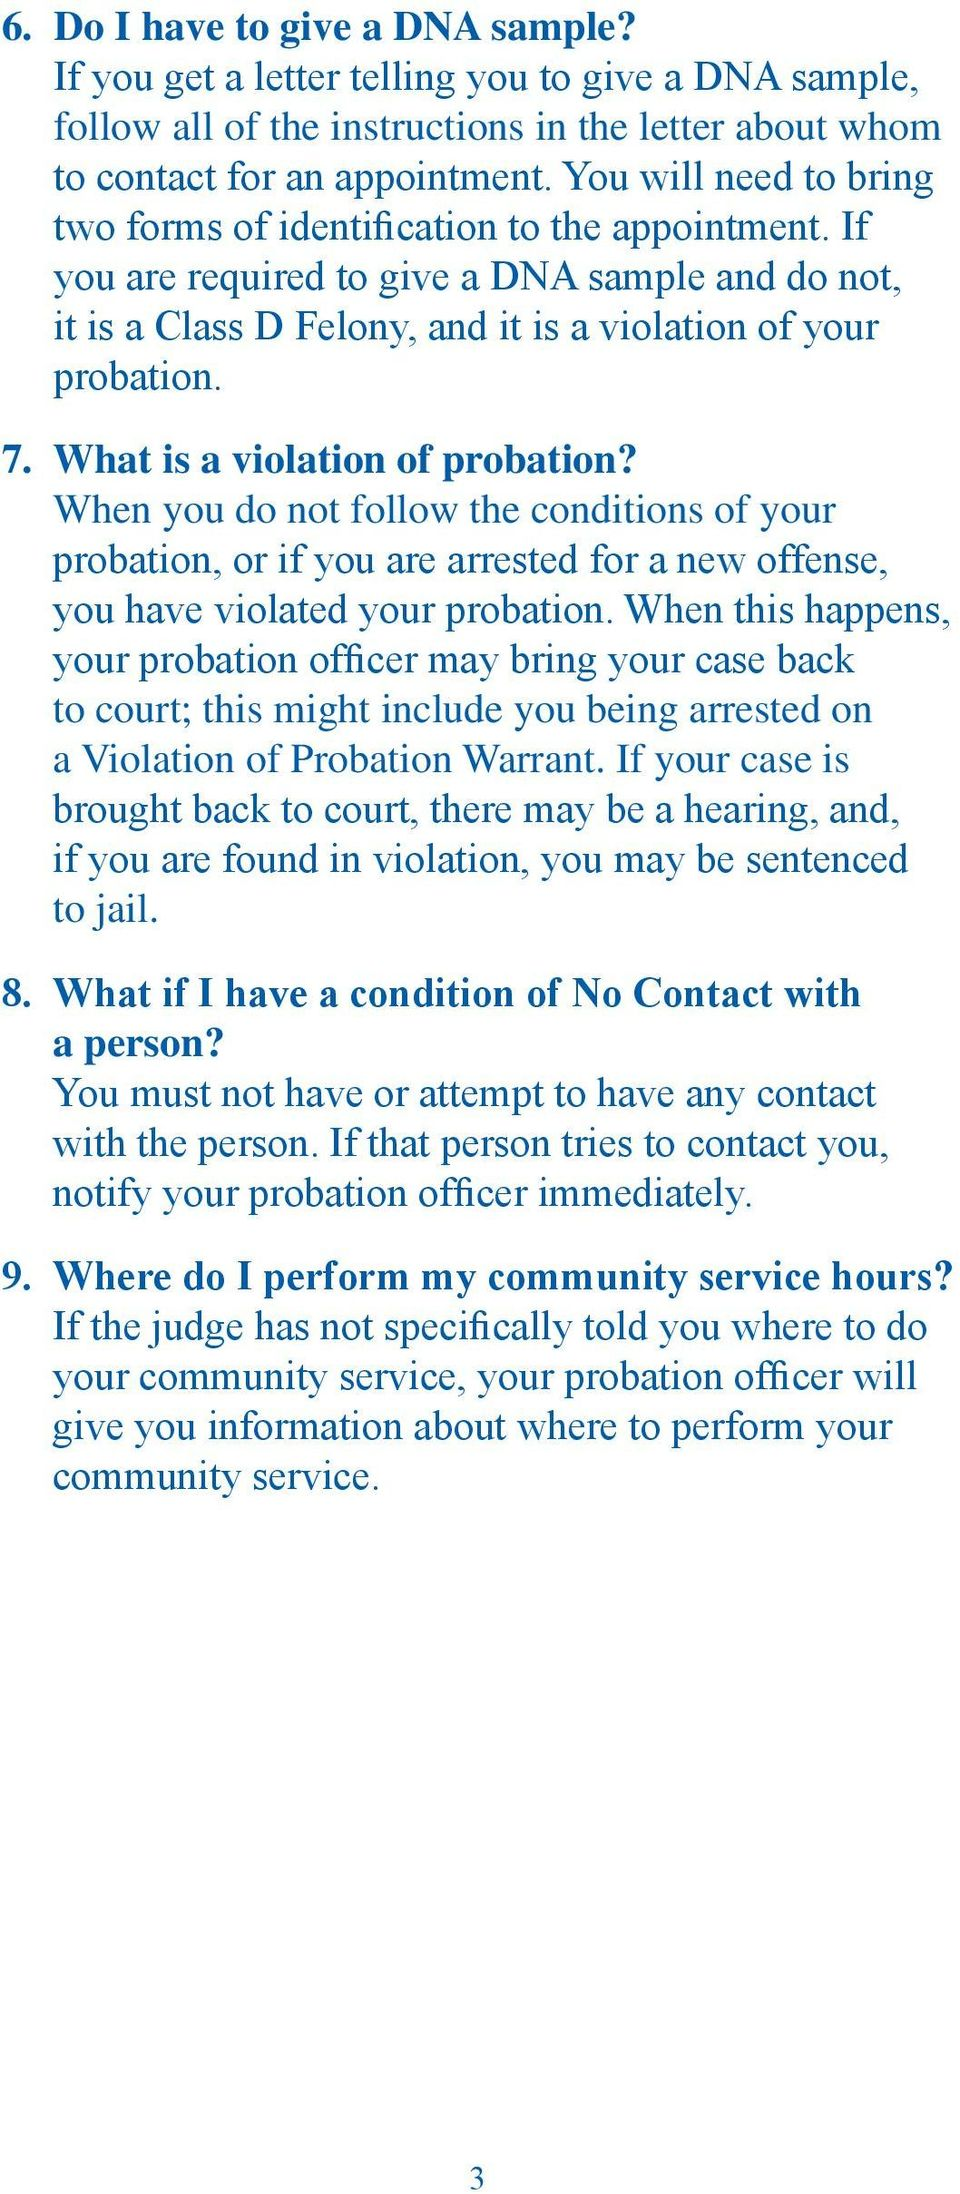 What is a violation of probation? When you do not follow the conditions of your probation, or if you are arrested for a new offense, you have violated your probation.